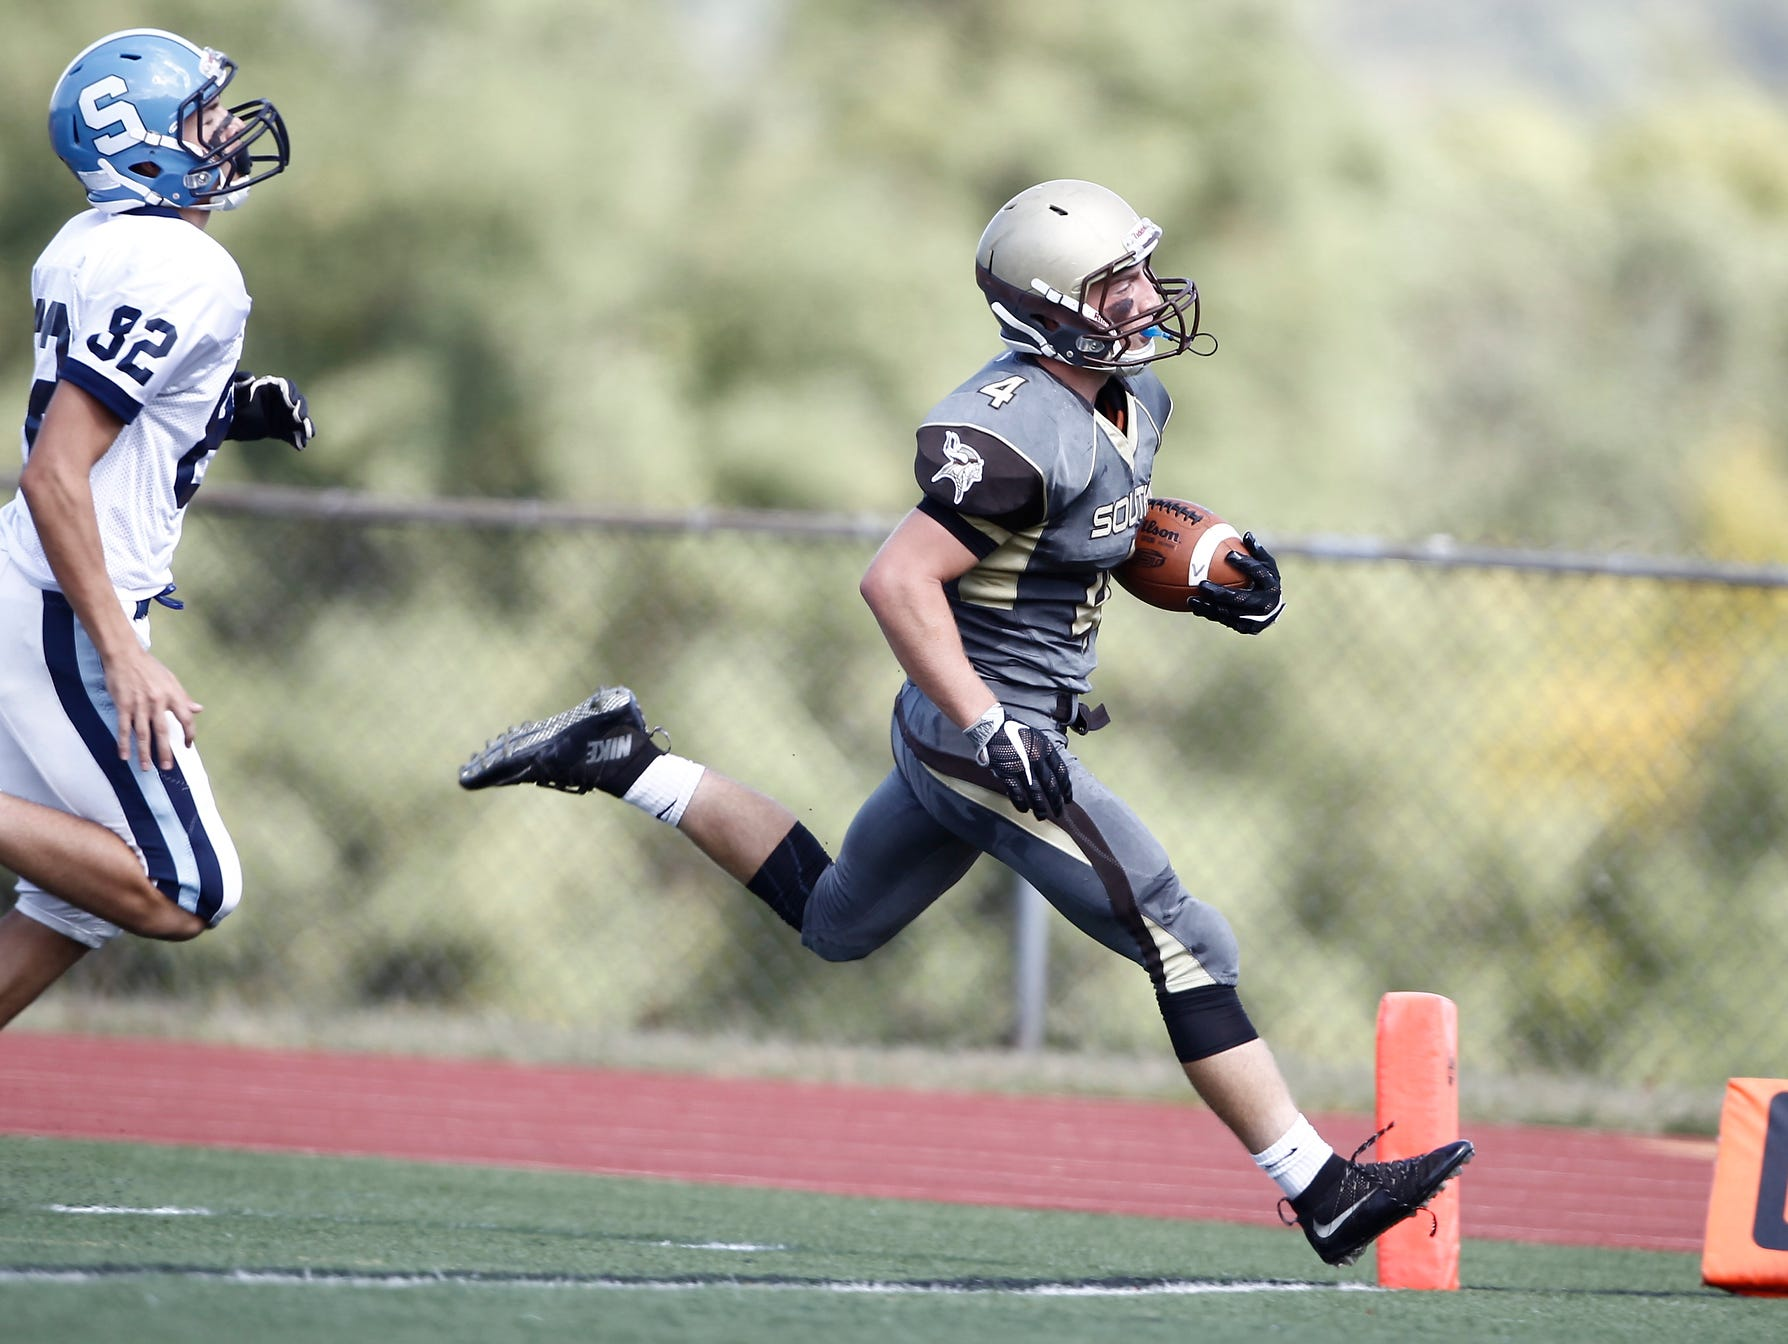 Clarkstown South's Kyle Samuels (4) crosses the goal line during their 30 - 0 win over Suffern at Clarkstown South High School on Saturday, September 17, 2016.